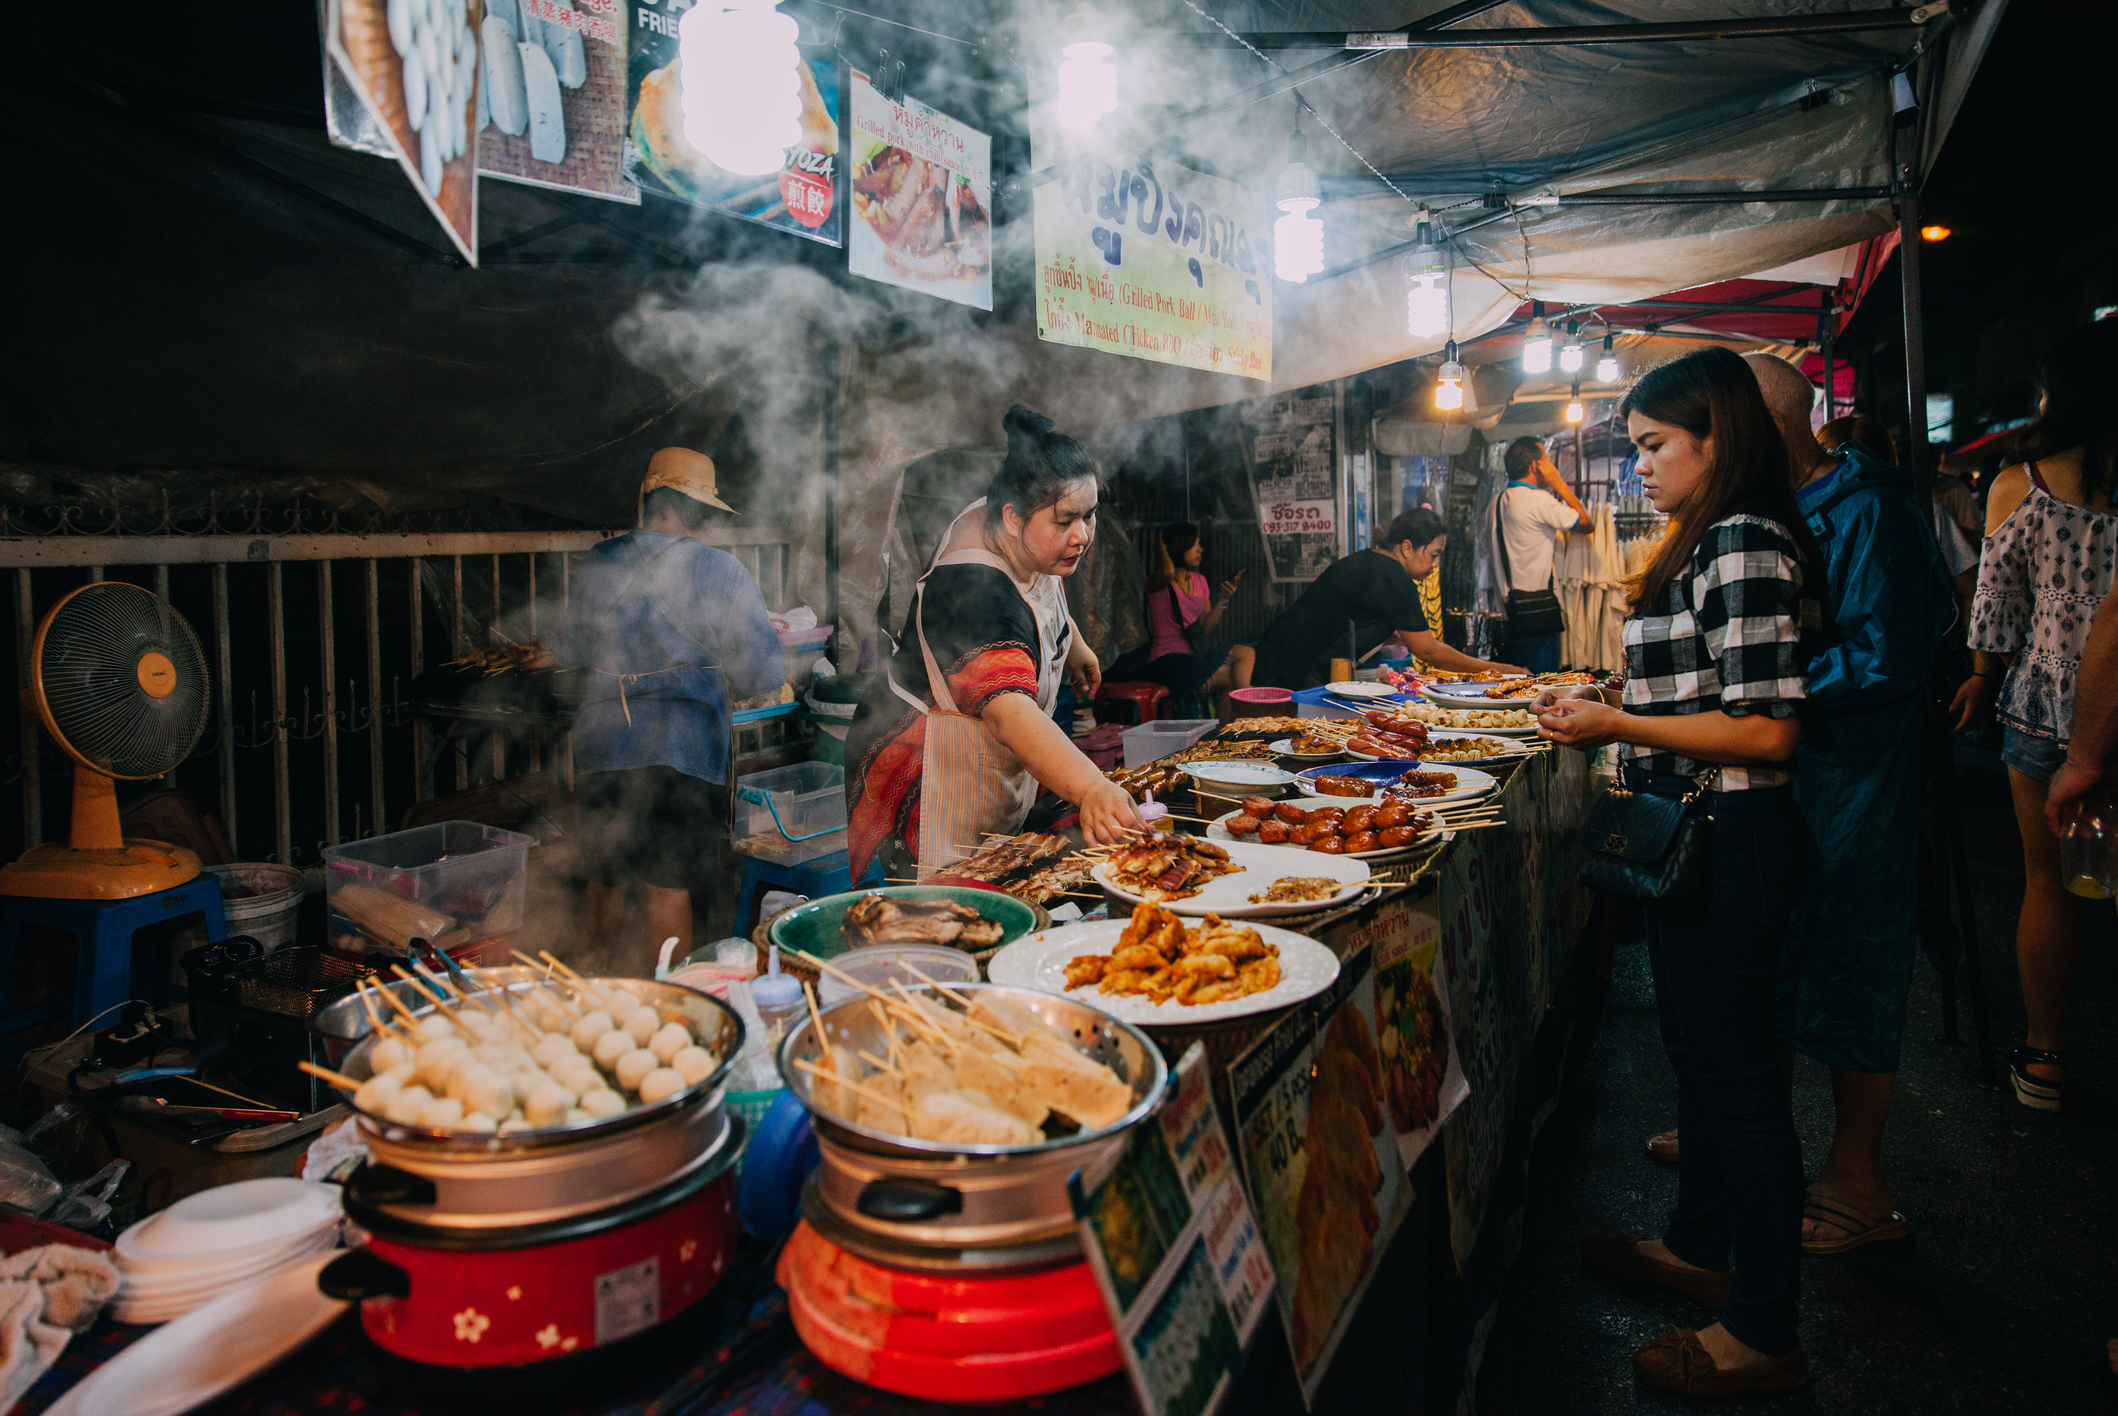 Saturday night market in Chiang Mai, Thailand